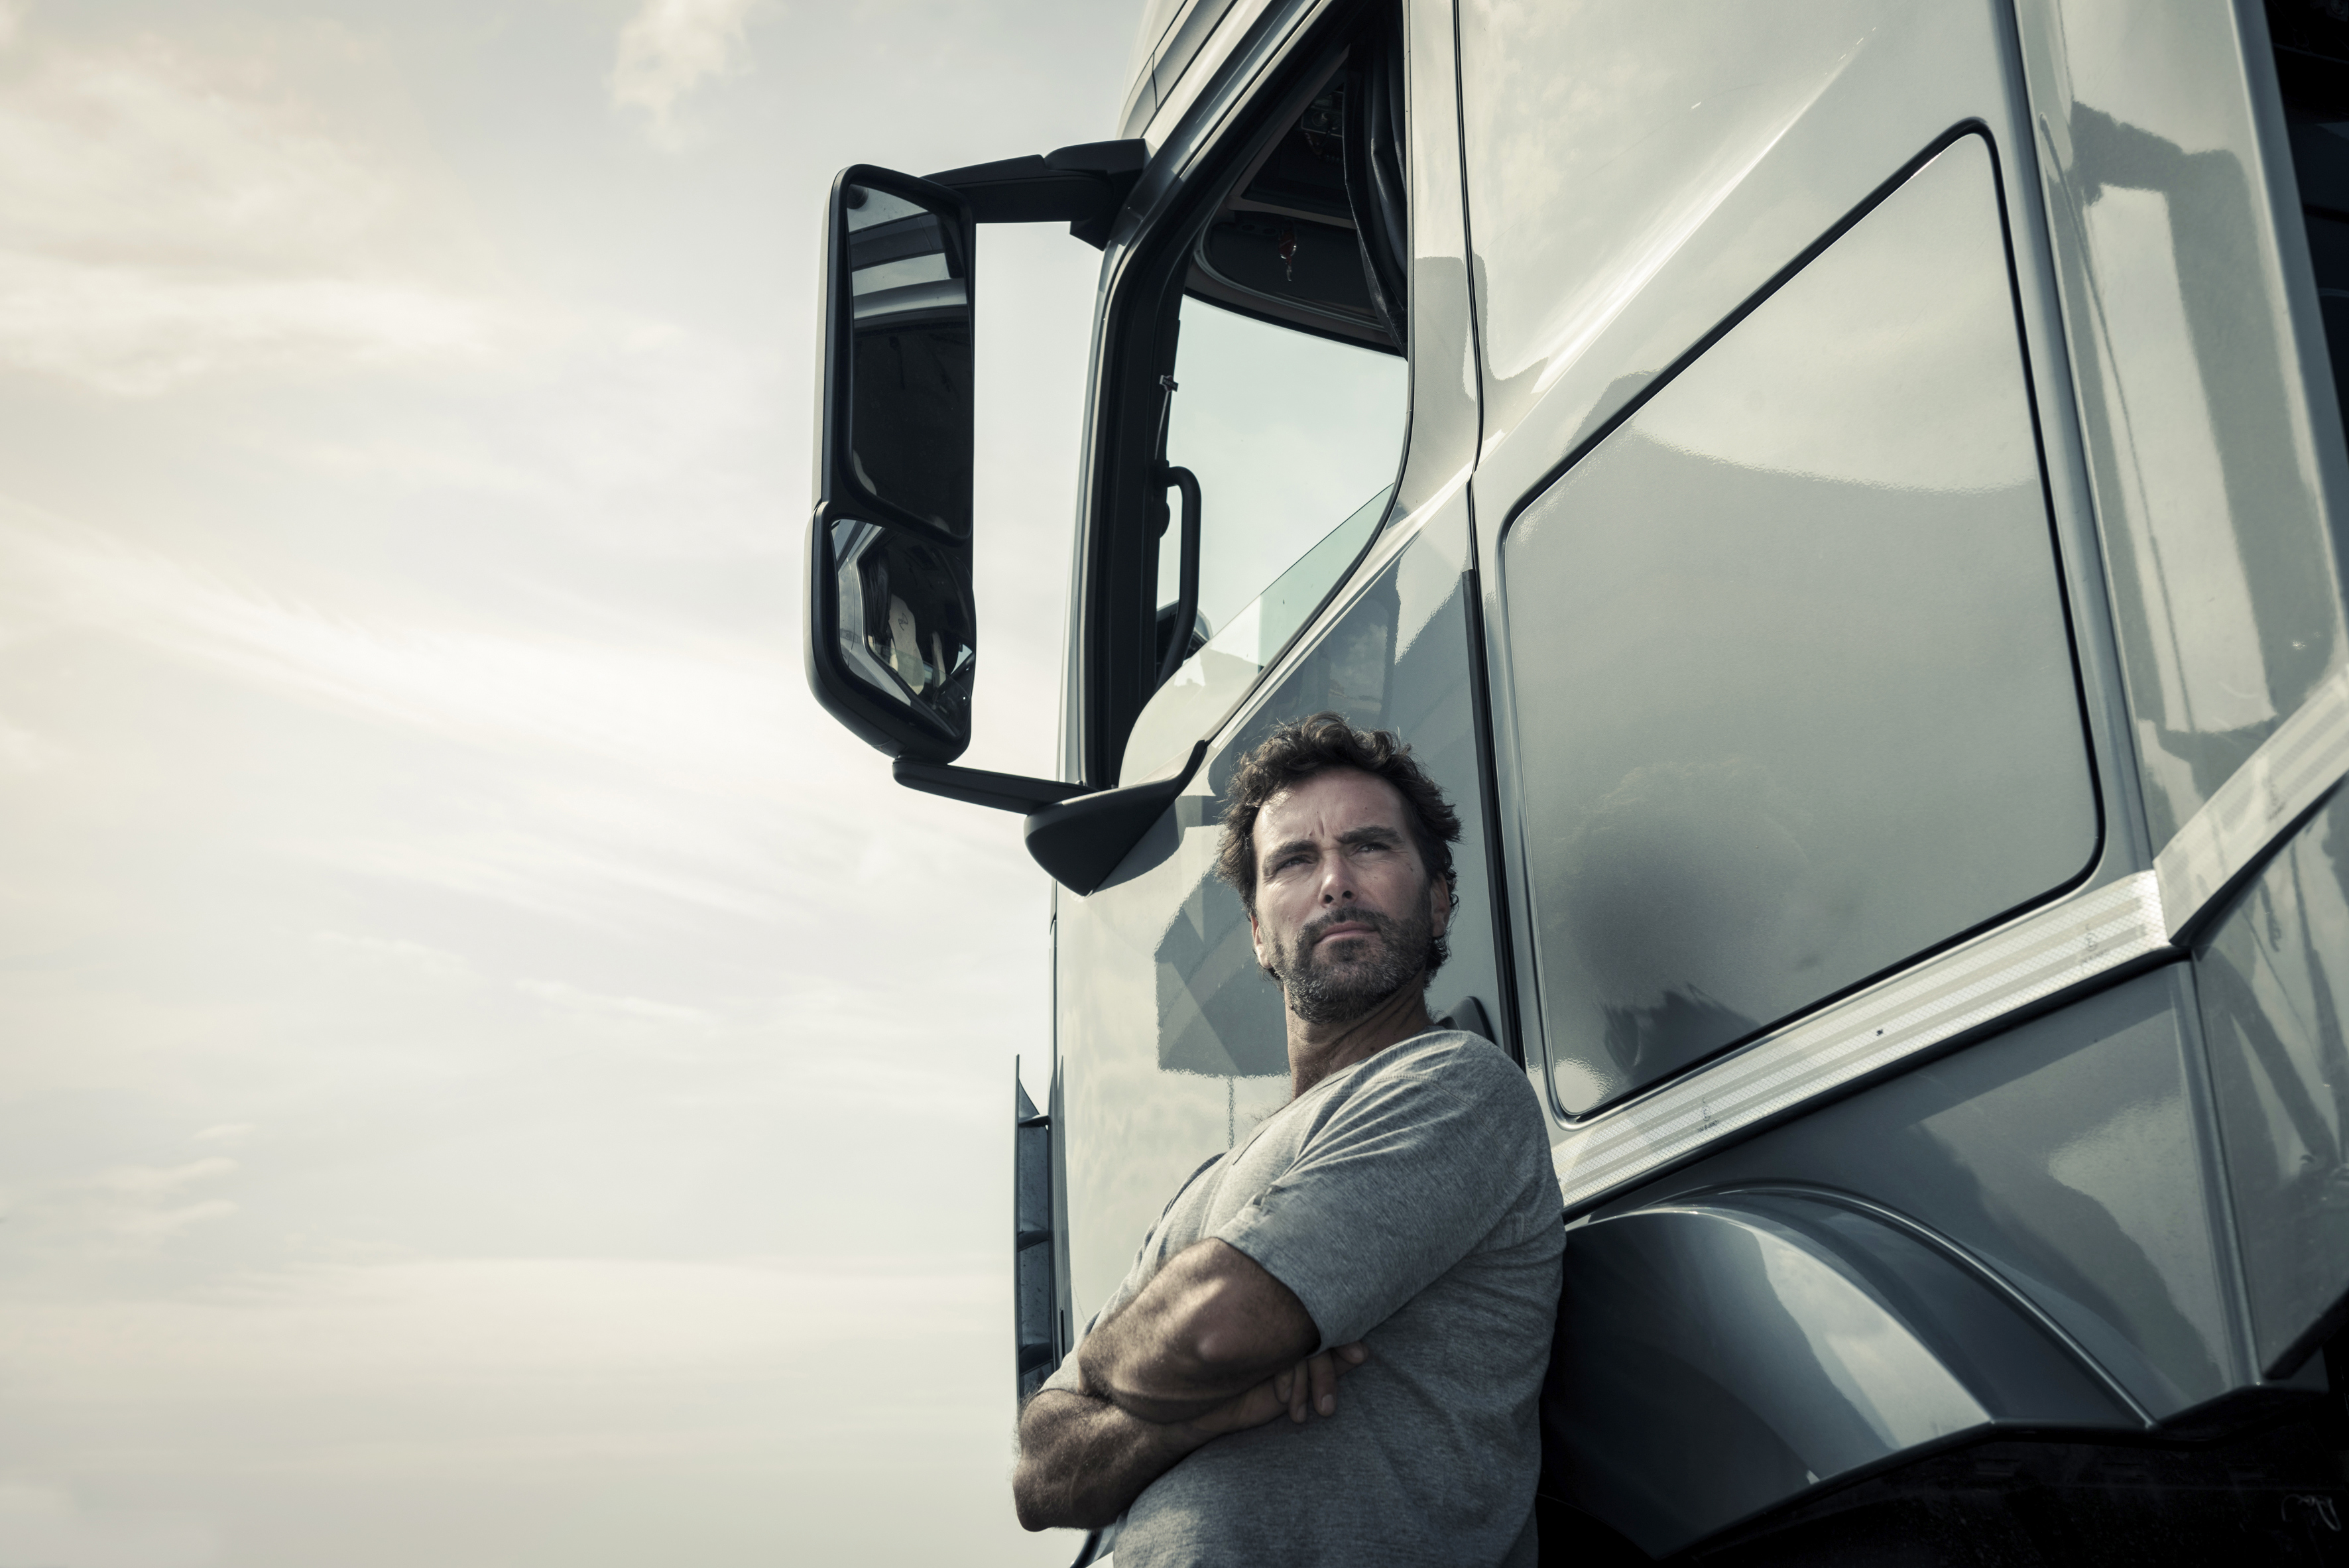 Driving Record Requirements for Obtaining a CDL | Bizfluent